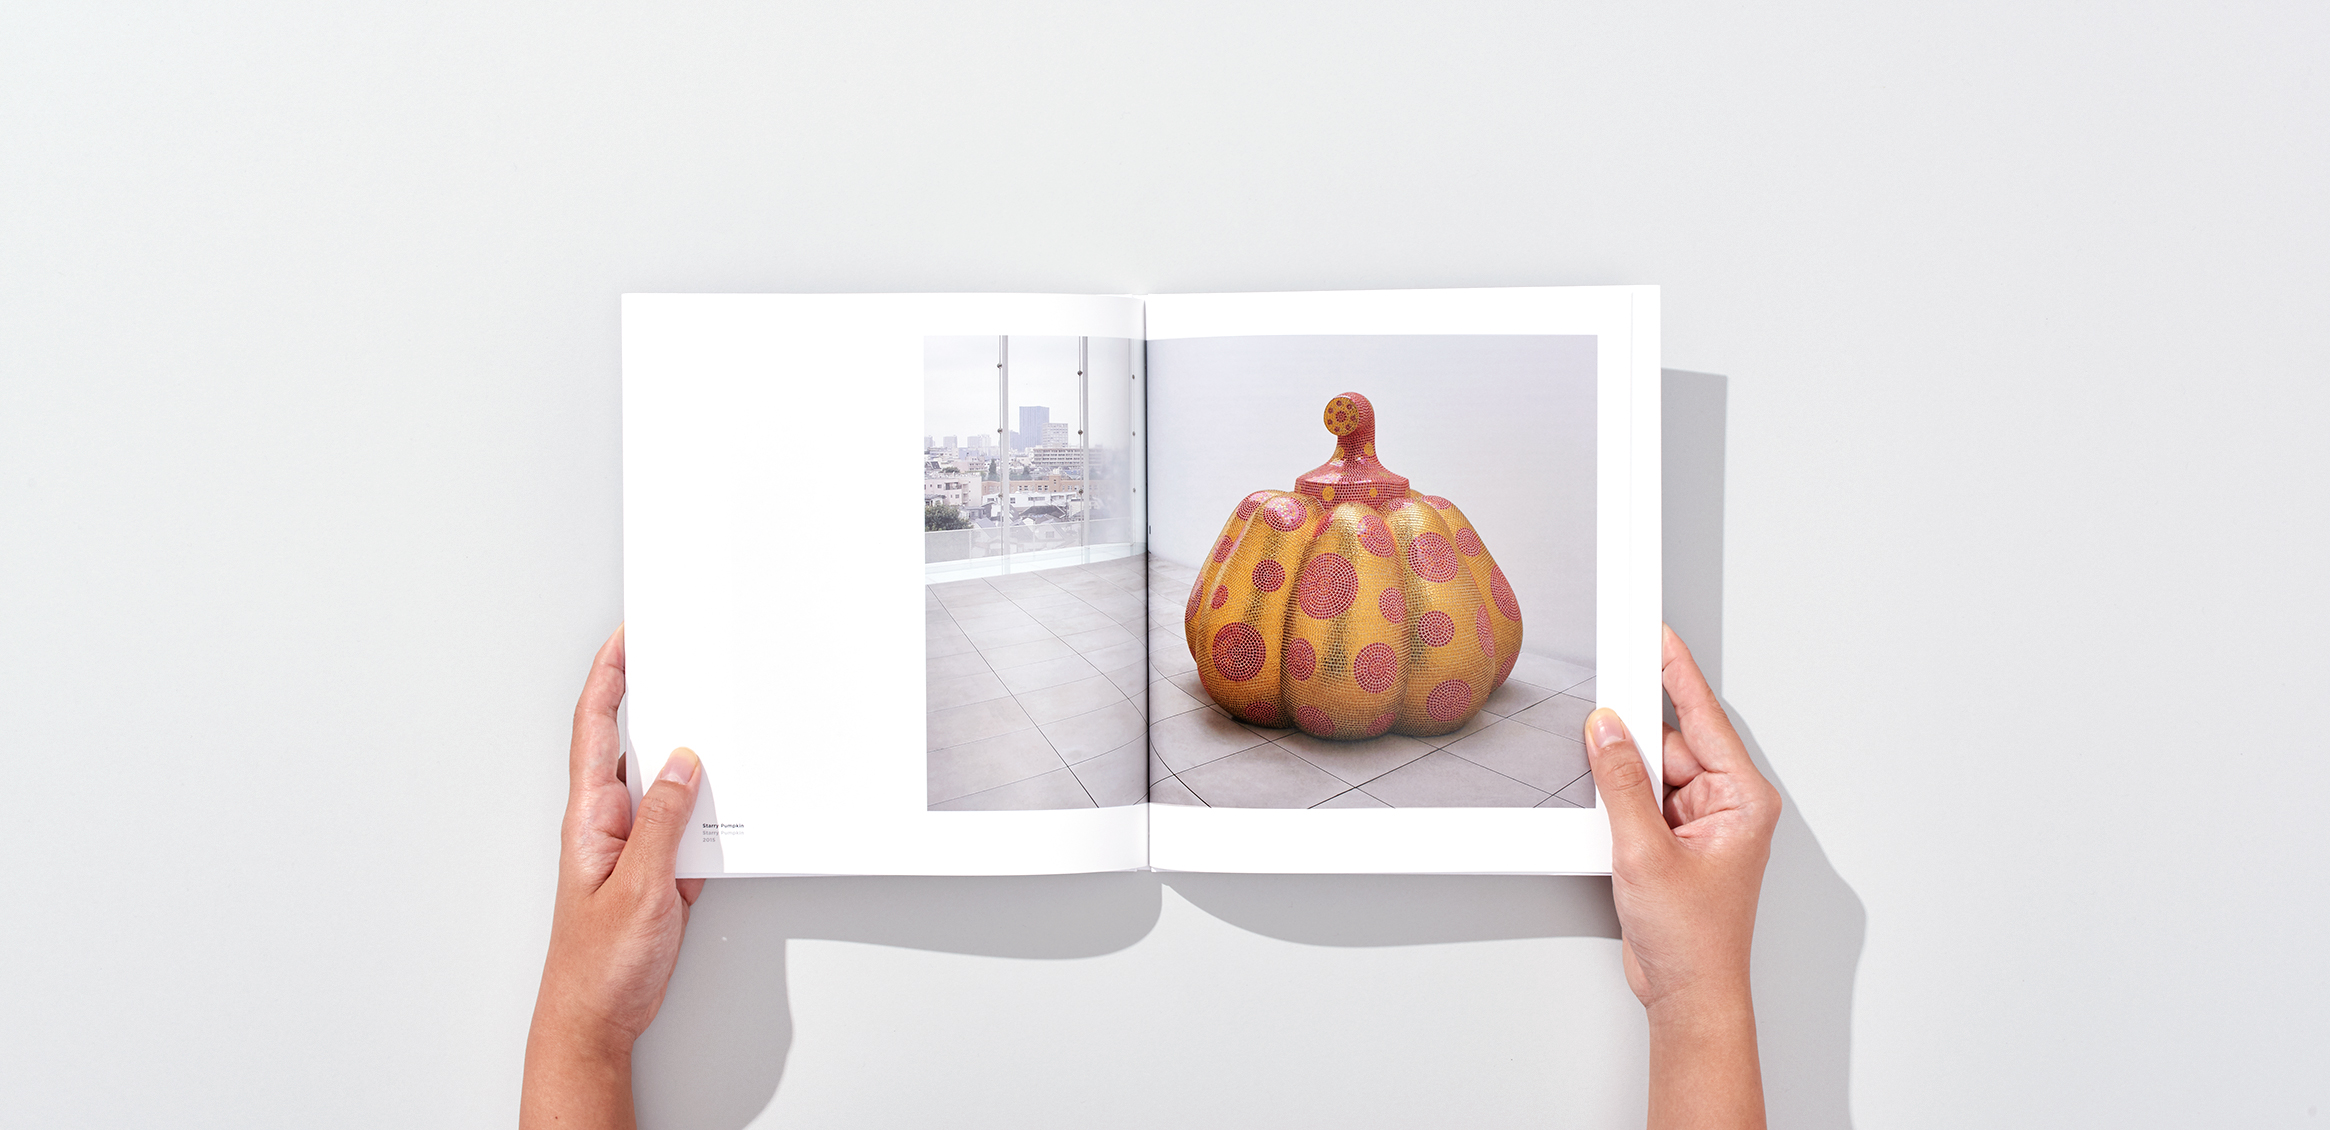 Yayoi Kusama Museum Inaugural Exhibition Commemorative Catalog8枚目